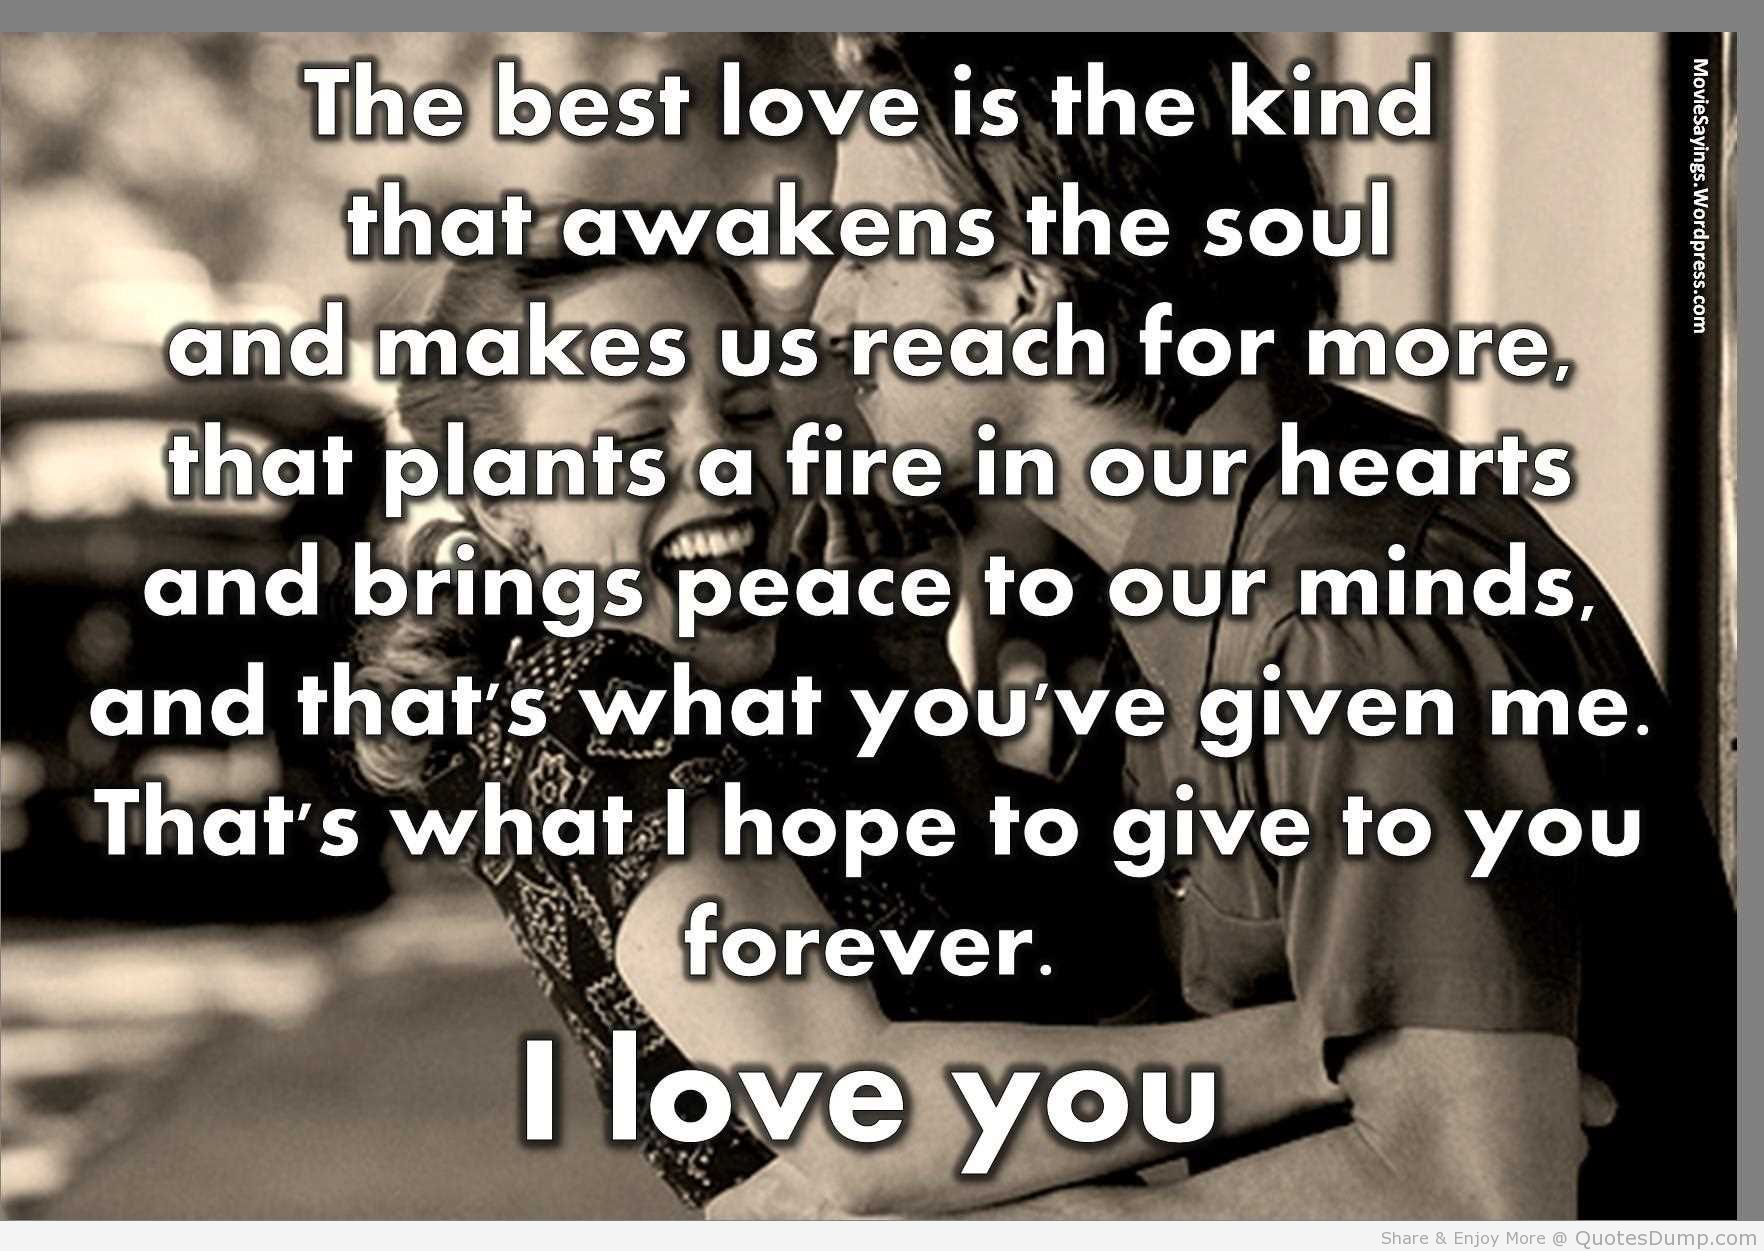 Famouse Love Quotes Love Quotes From The Notebook The Best Kind Of Love  Quotesdump